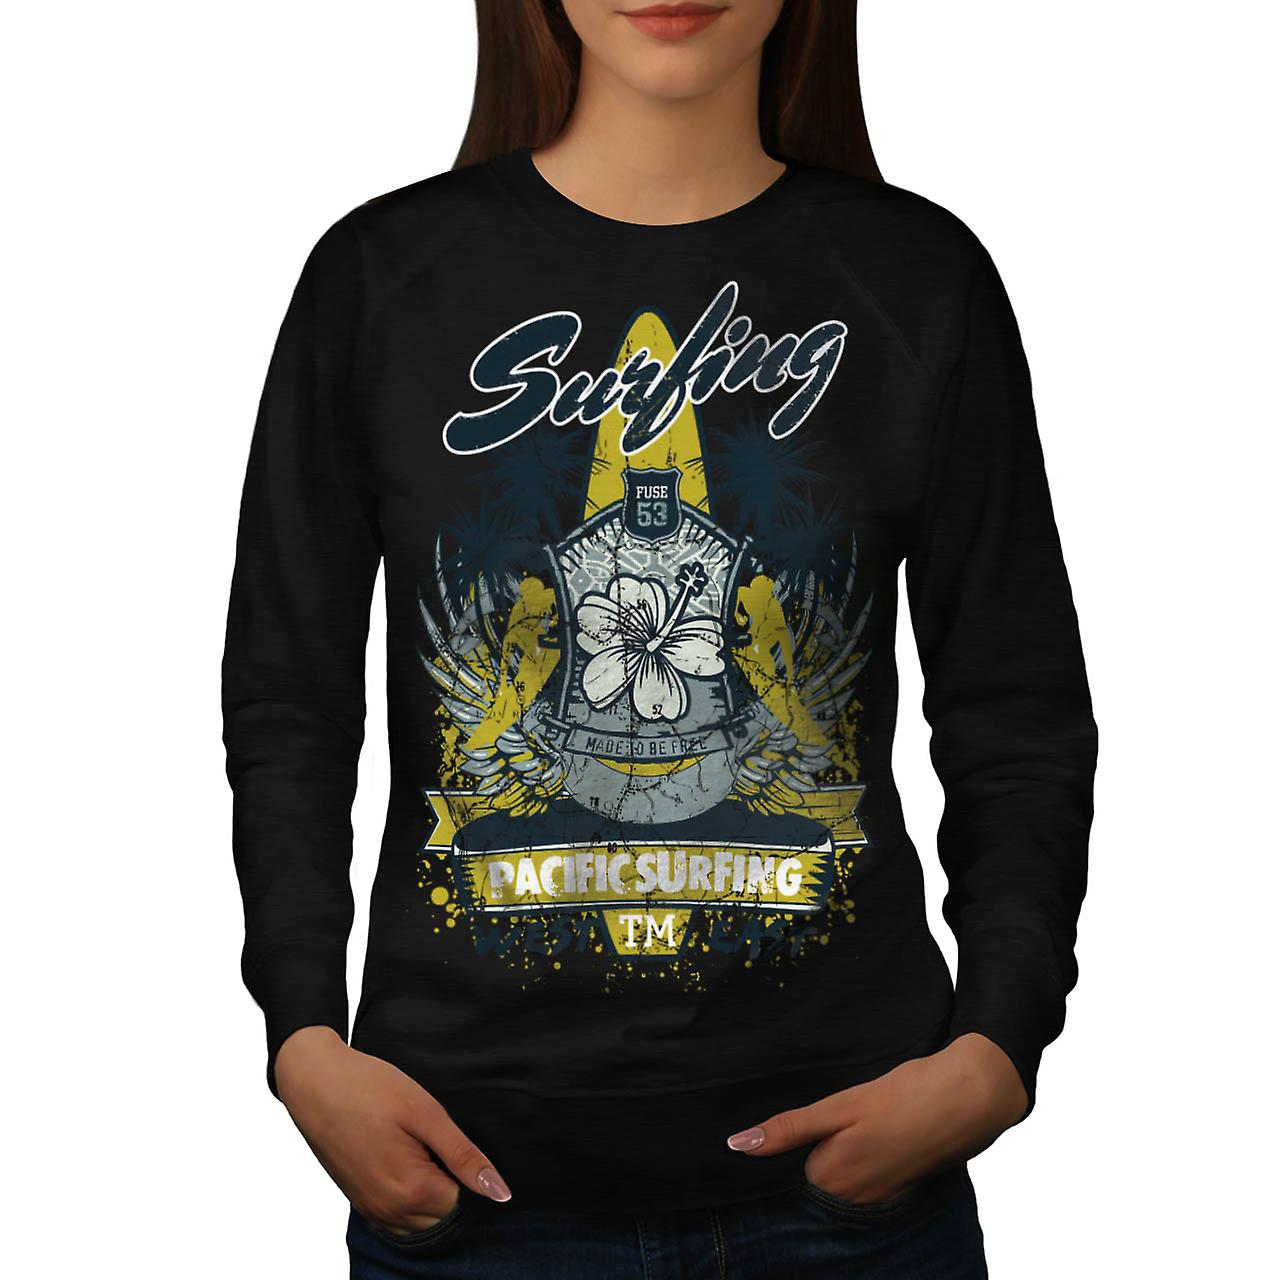 Pacific Surfing Beach West øst kvinner svart Sweatshirt | Wellcoda